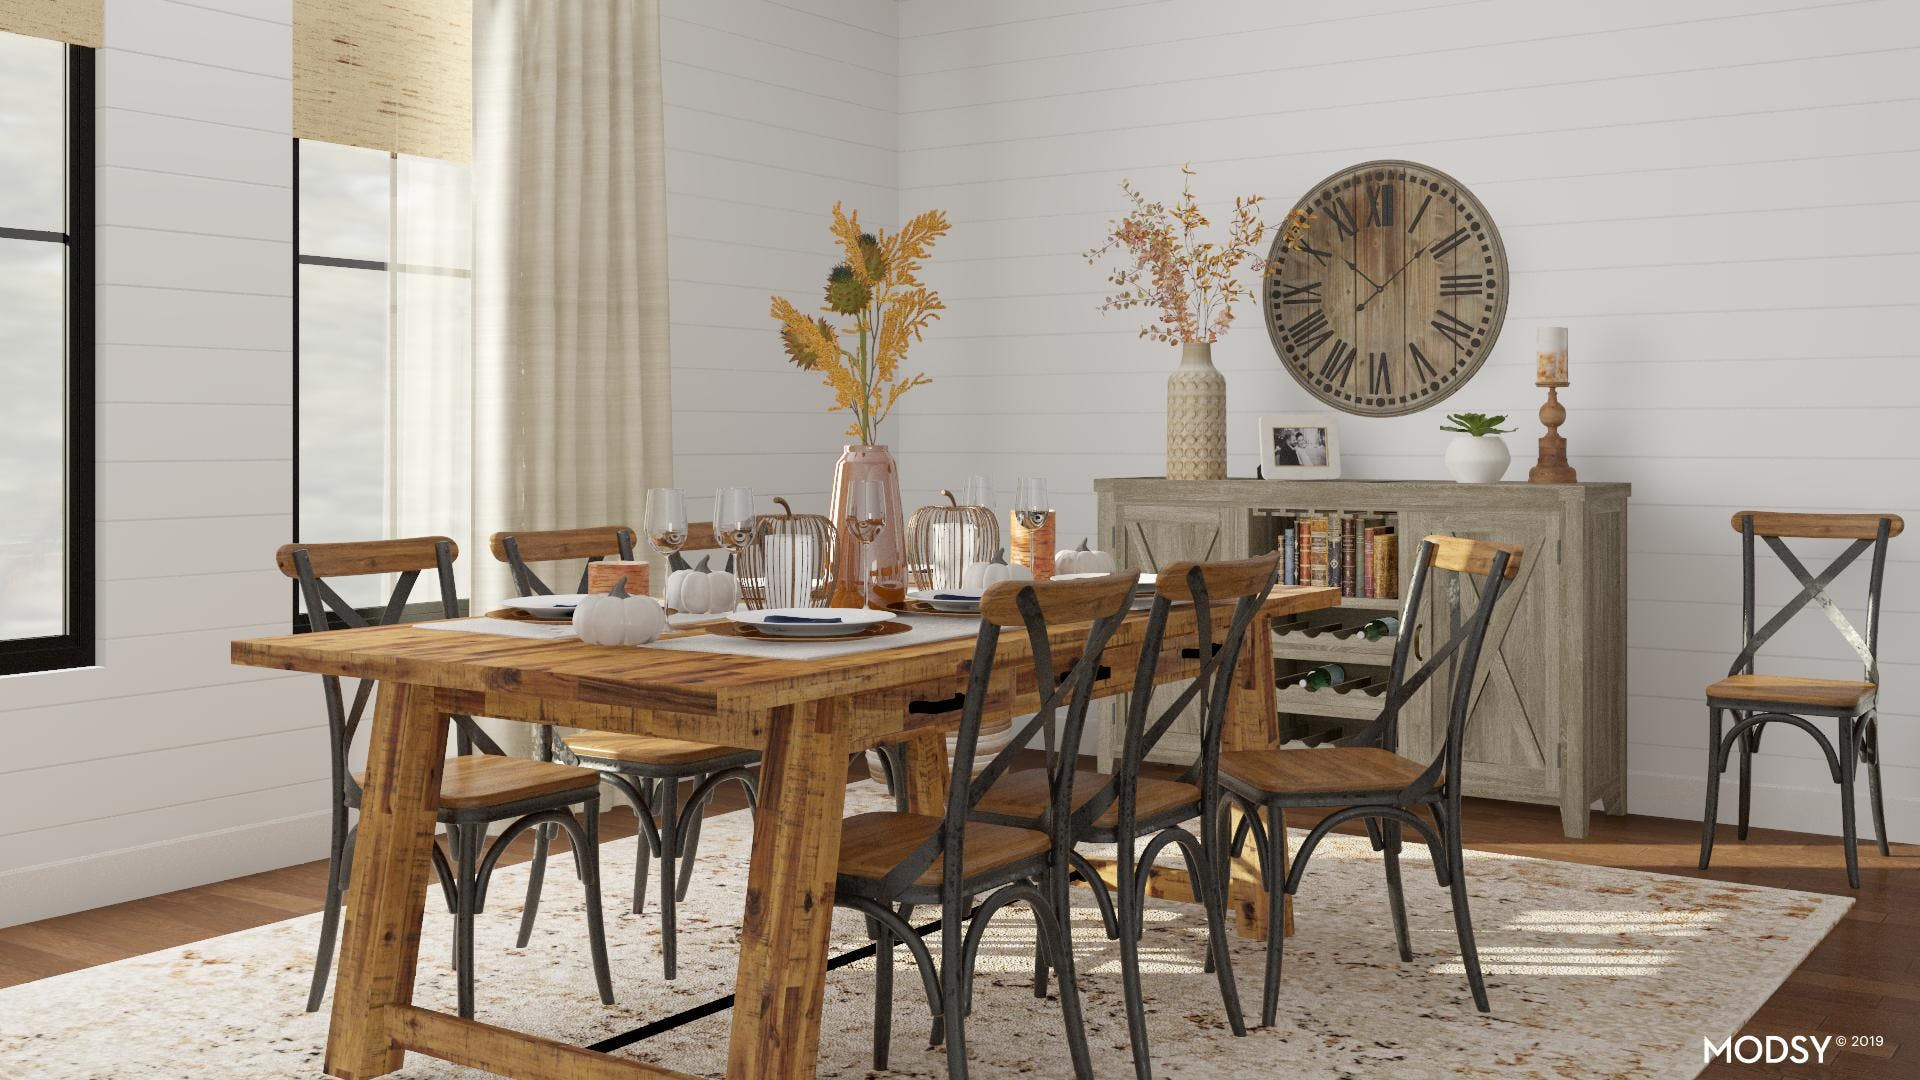 Fall Decor for a Modern Farmhouse Dining Room